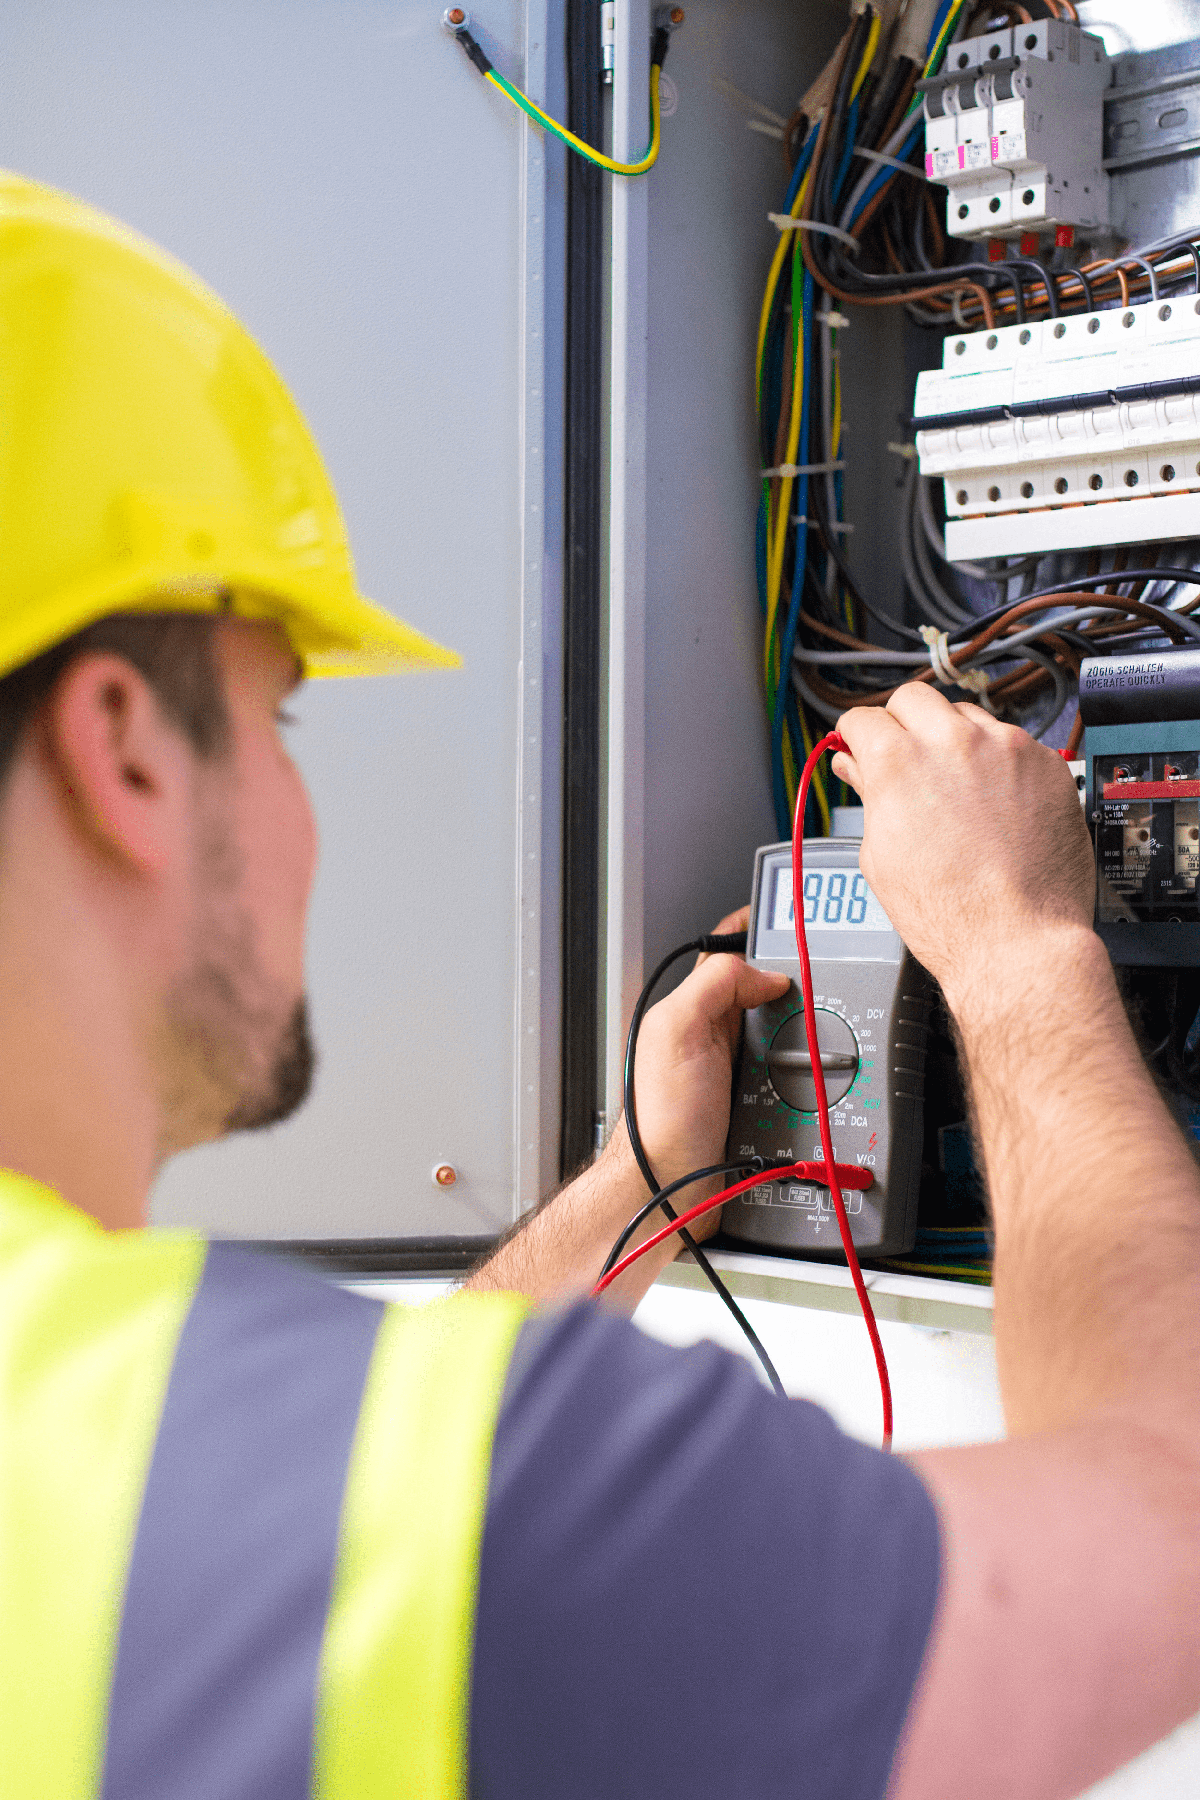 Electric Supply Company Automates Security Patches